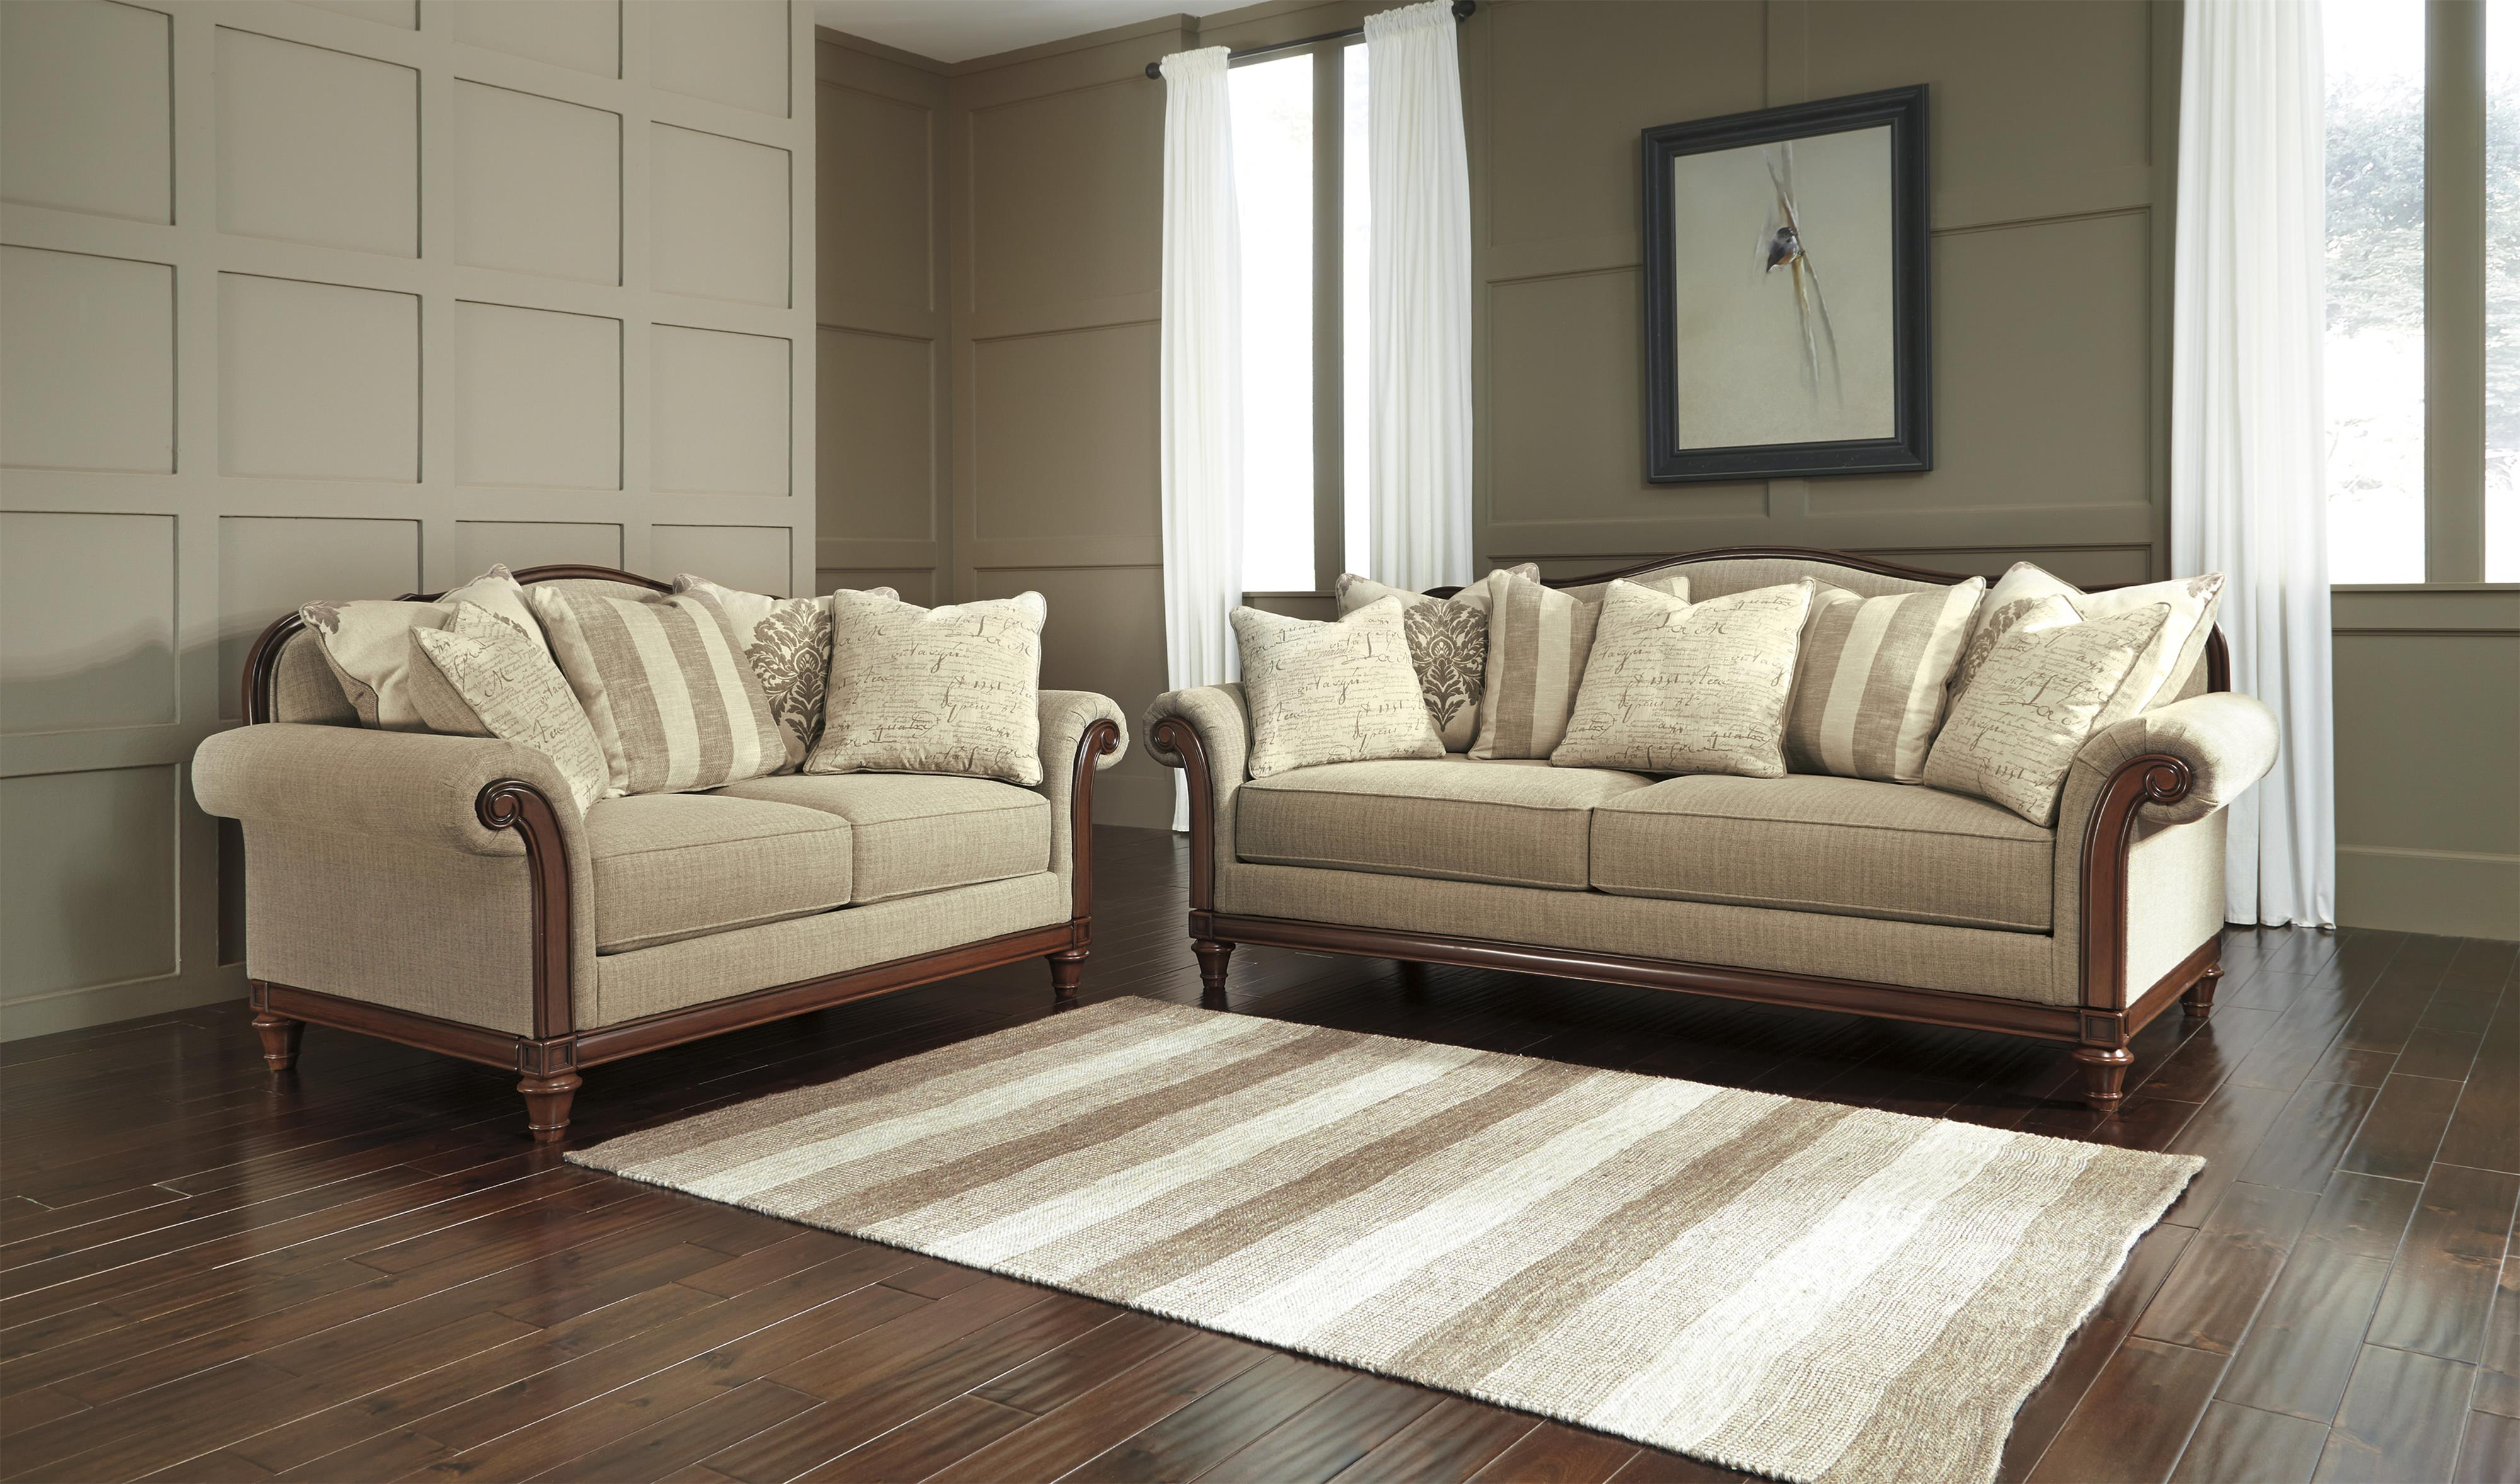 Signature Design by Ashley Berwyn View Stationary Living Room Group - Item Number: 89803 Living Room Group 1